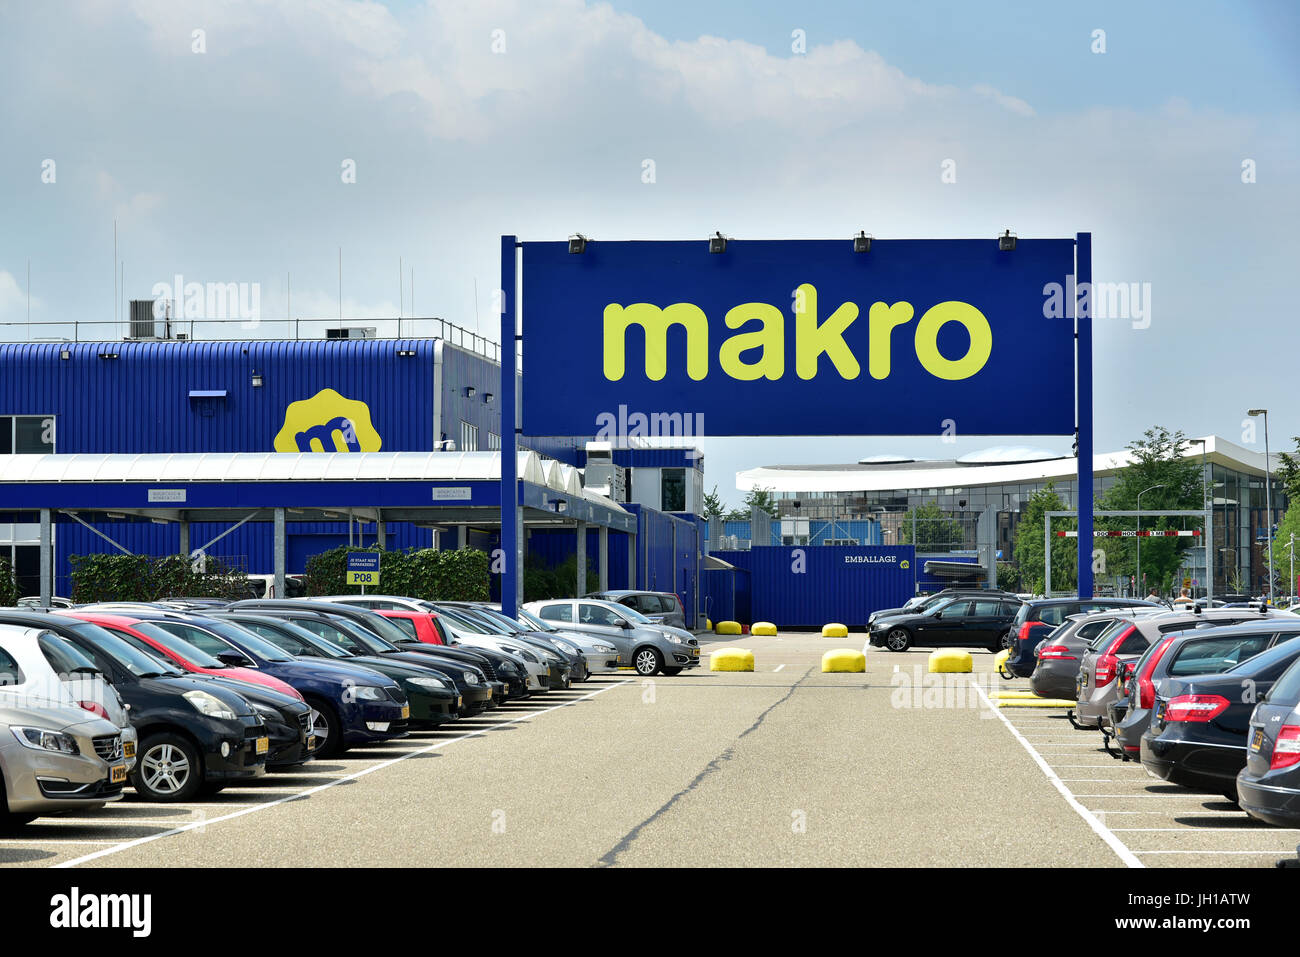 Makro wholesale store in The Netherlands - Stock Image